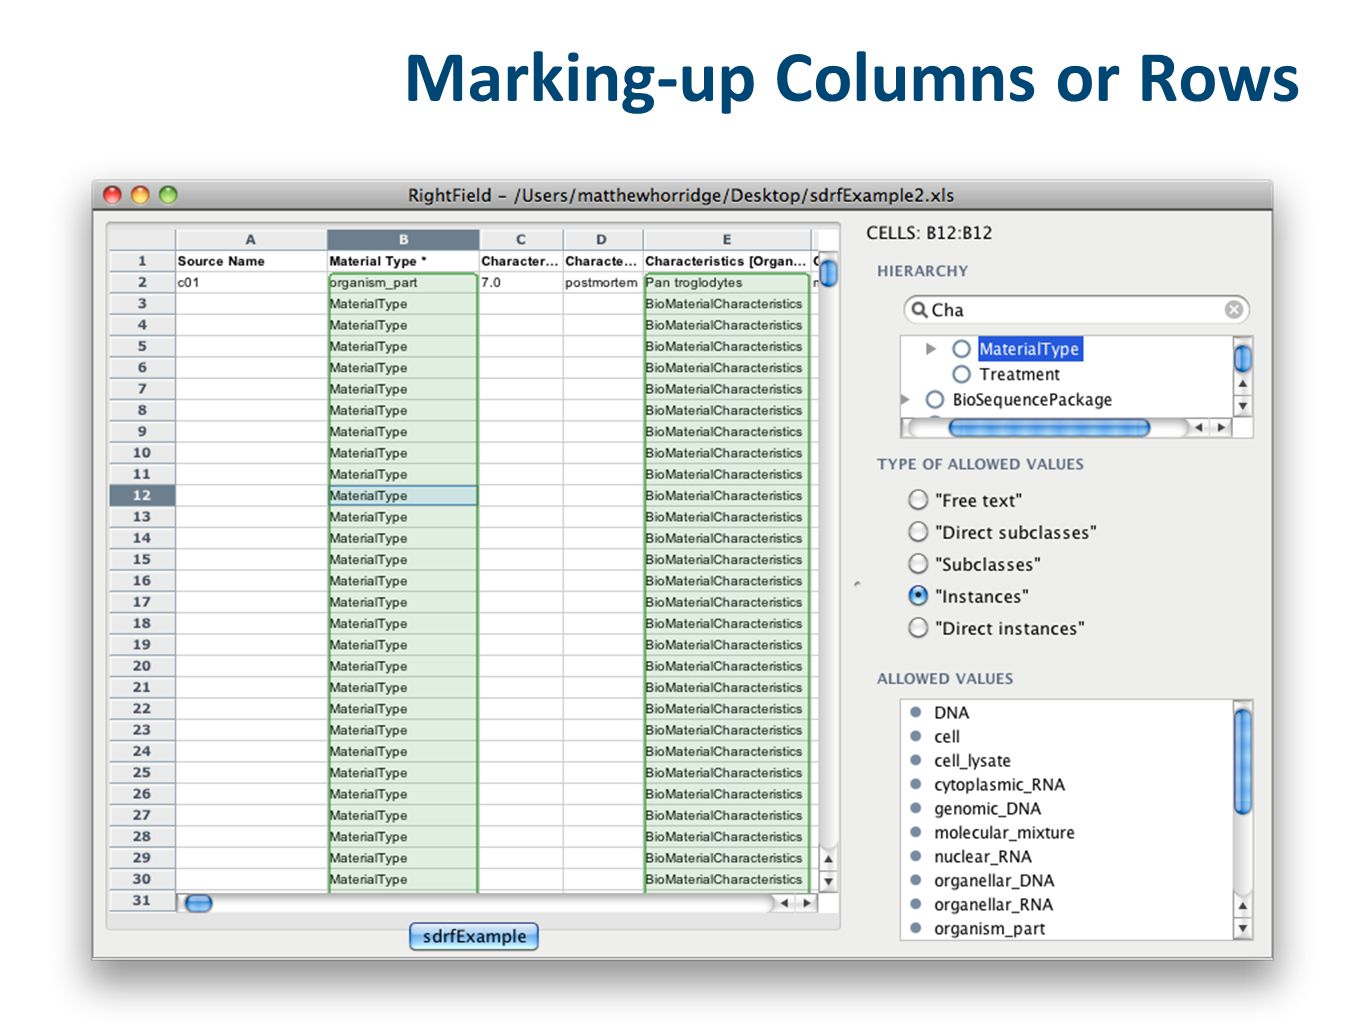 Marking-up Columns or Rows